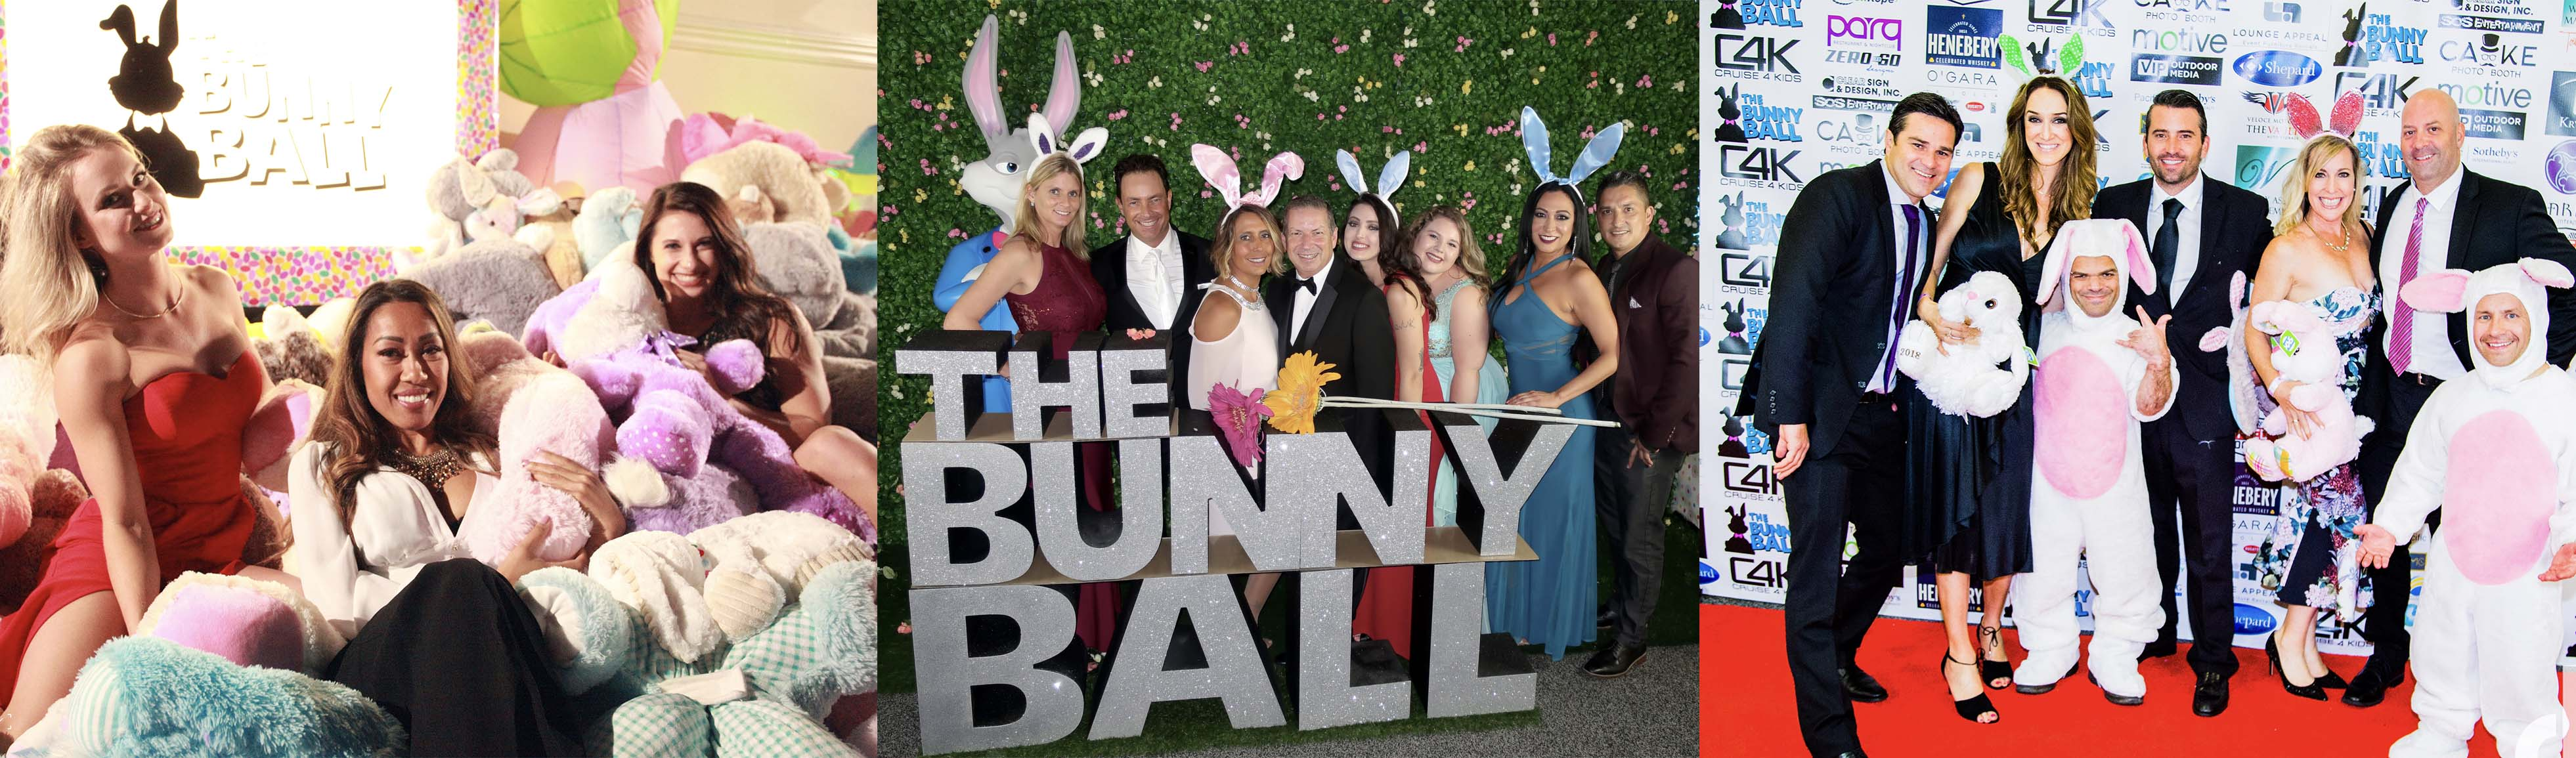 Bunny Ball Images Banner